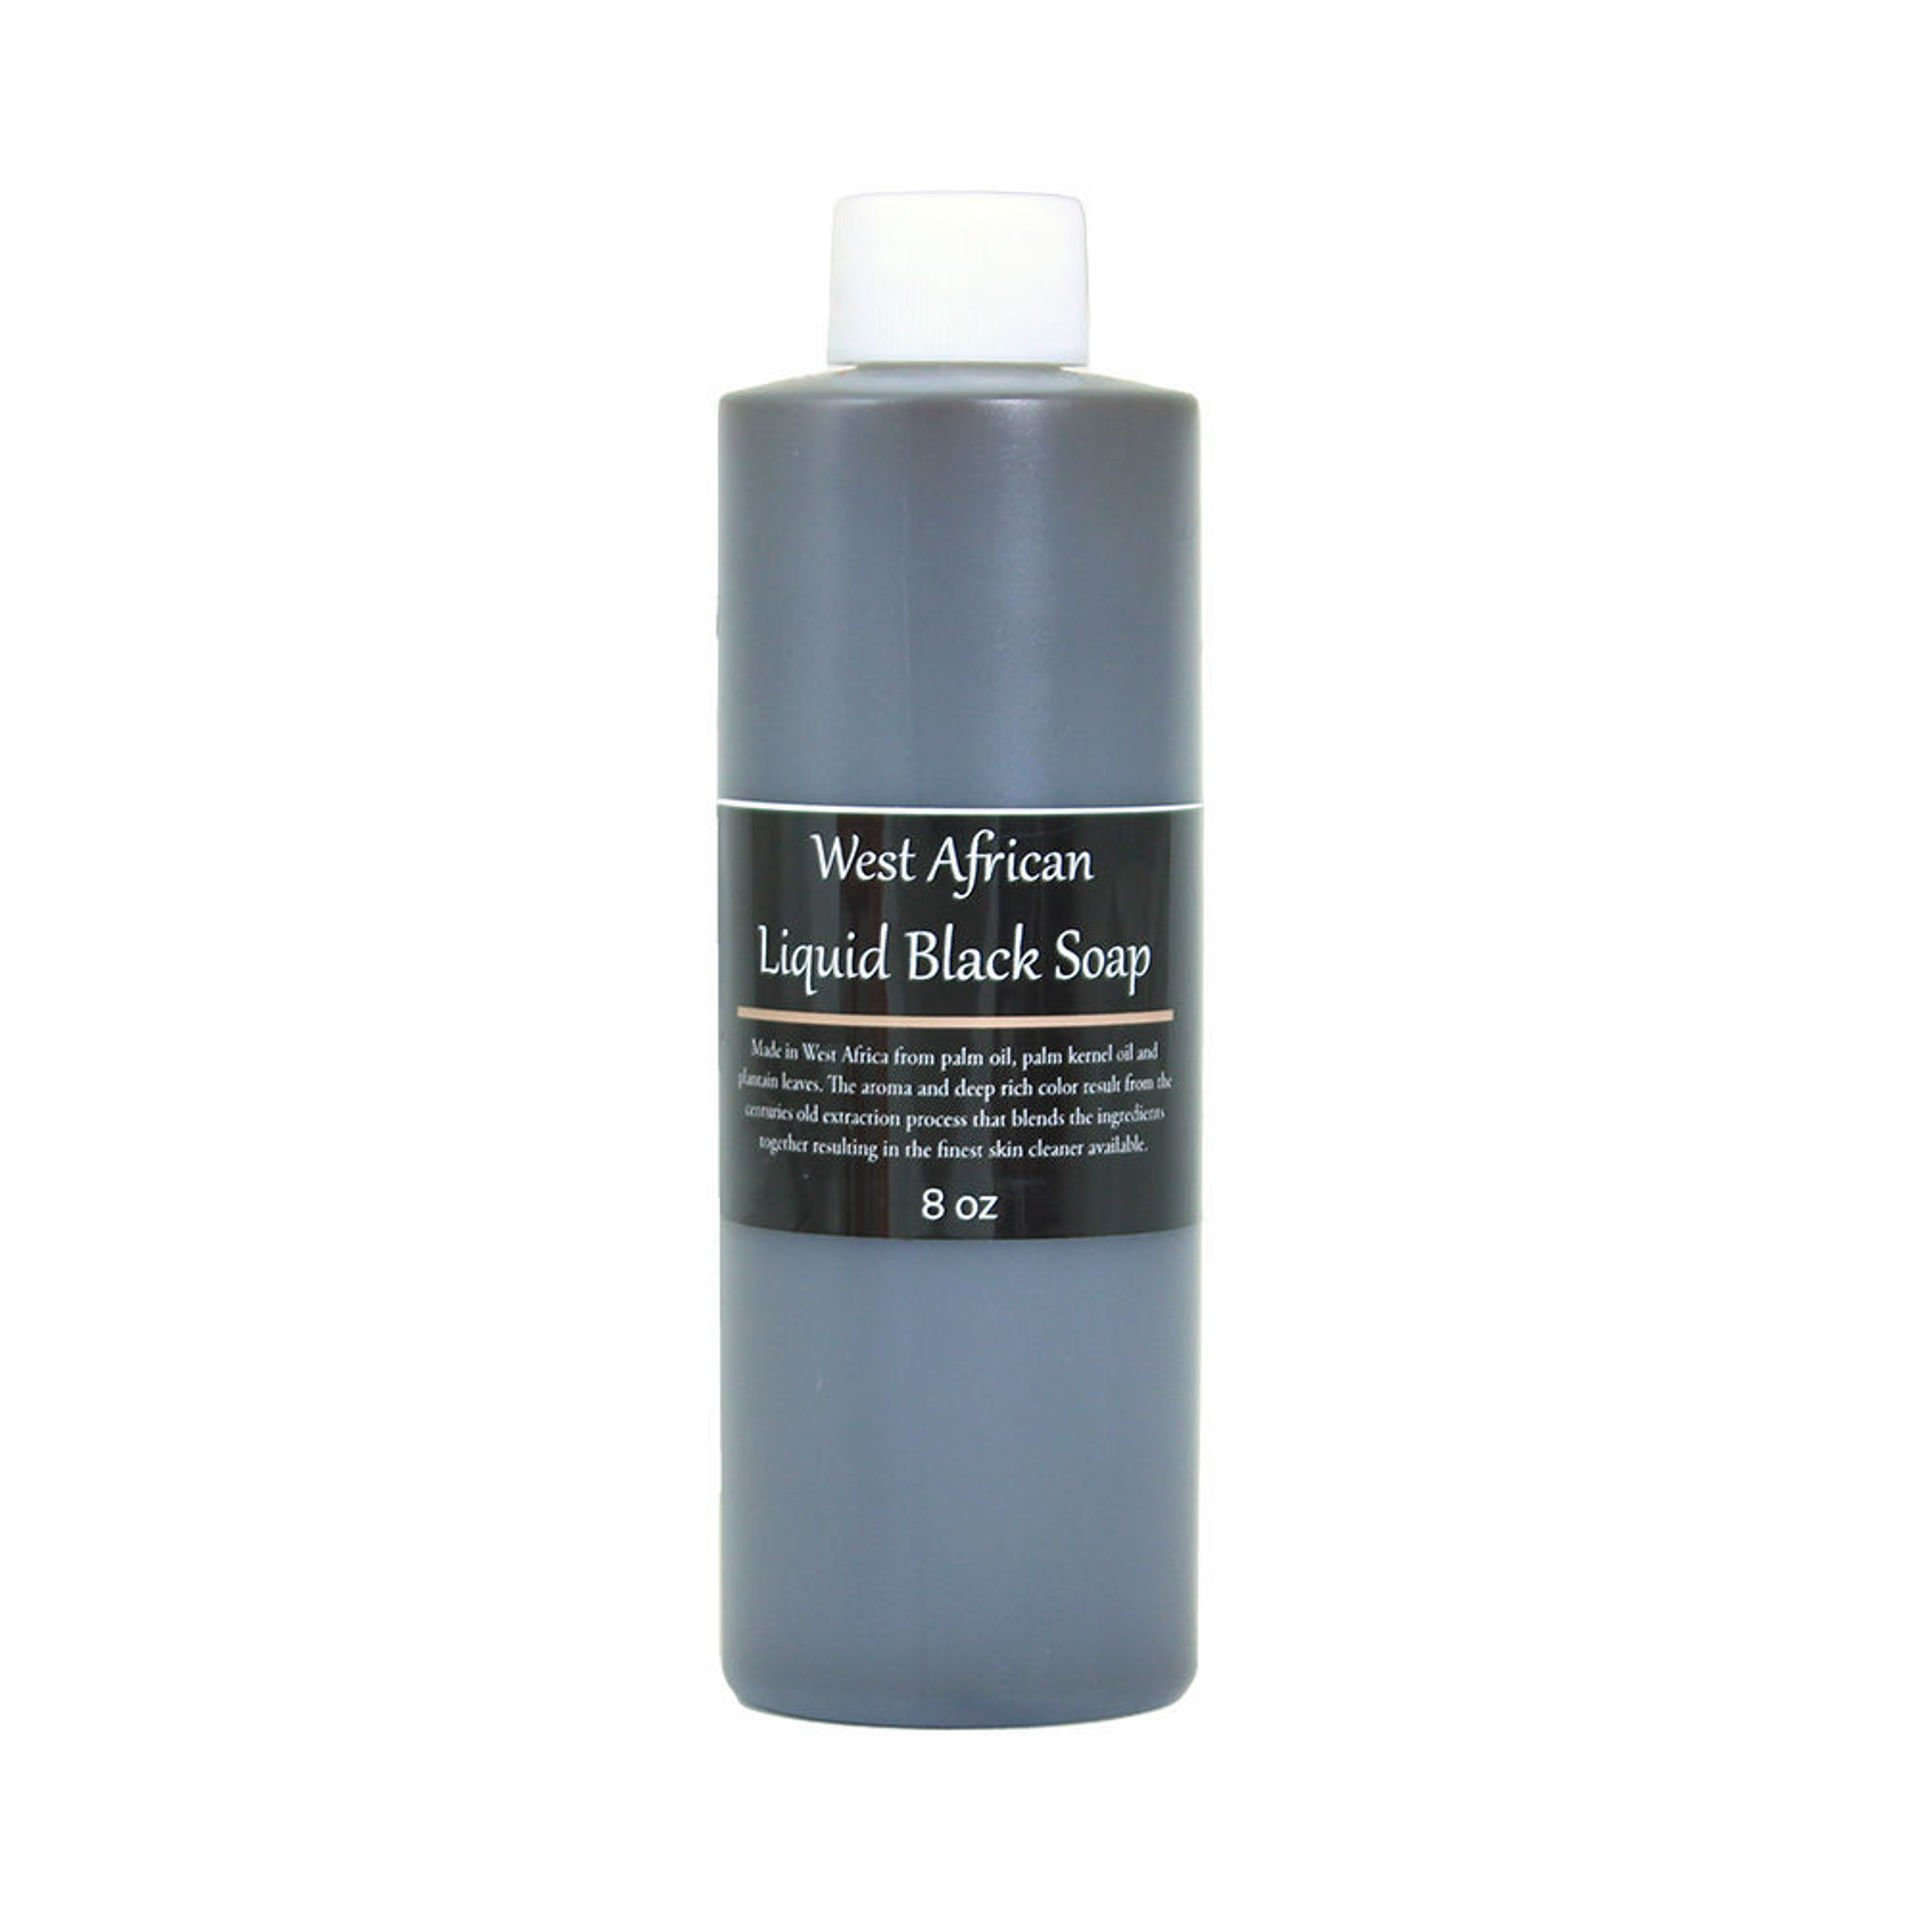 Picture of West African Liquid Black Soap - 8 oz.